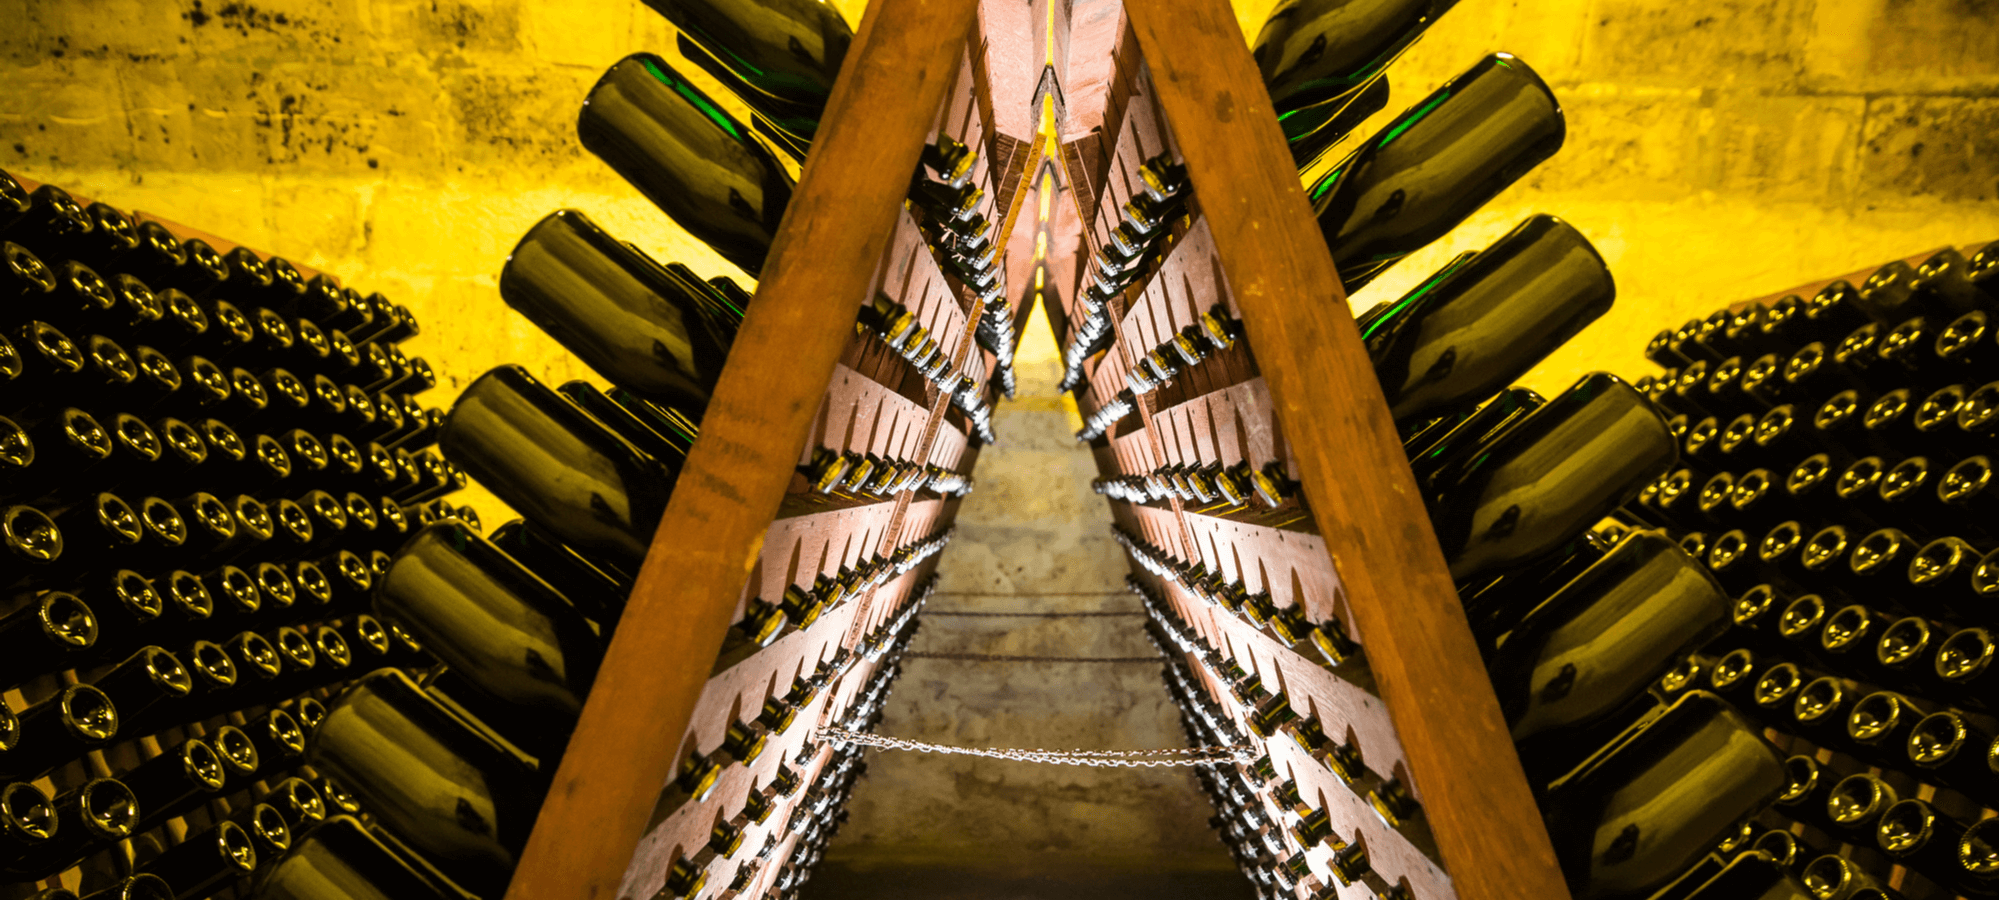 Champagne aging